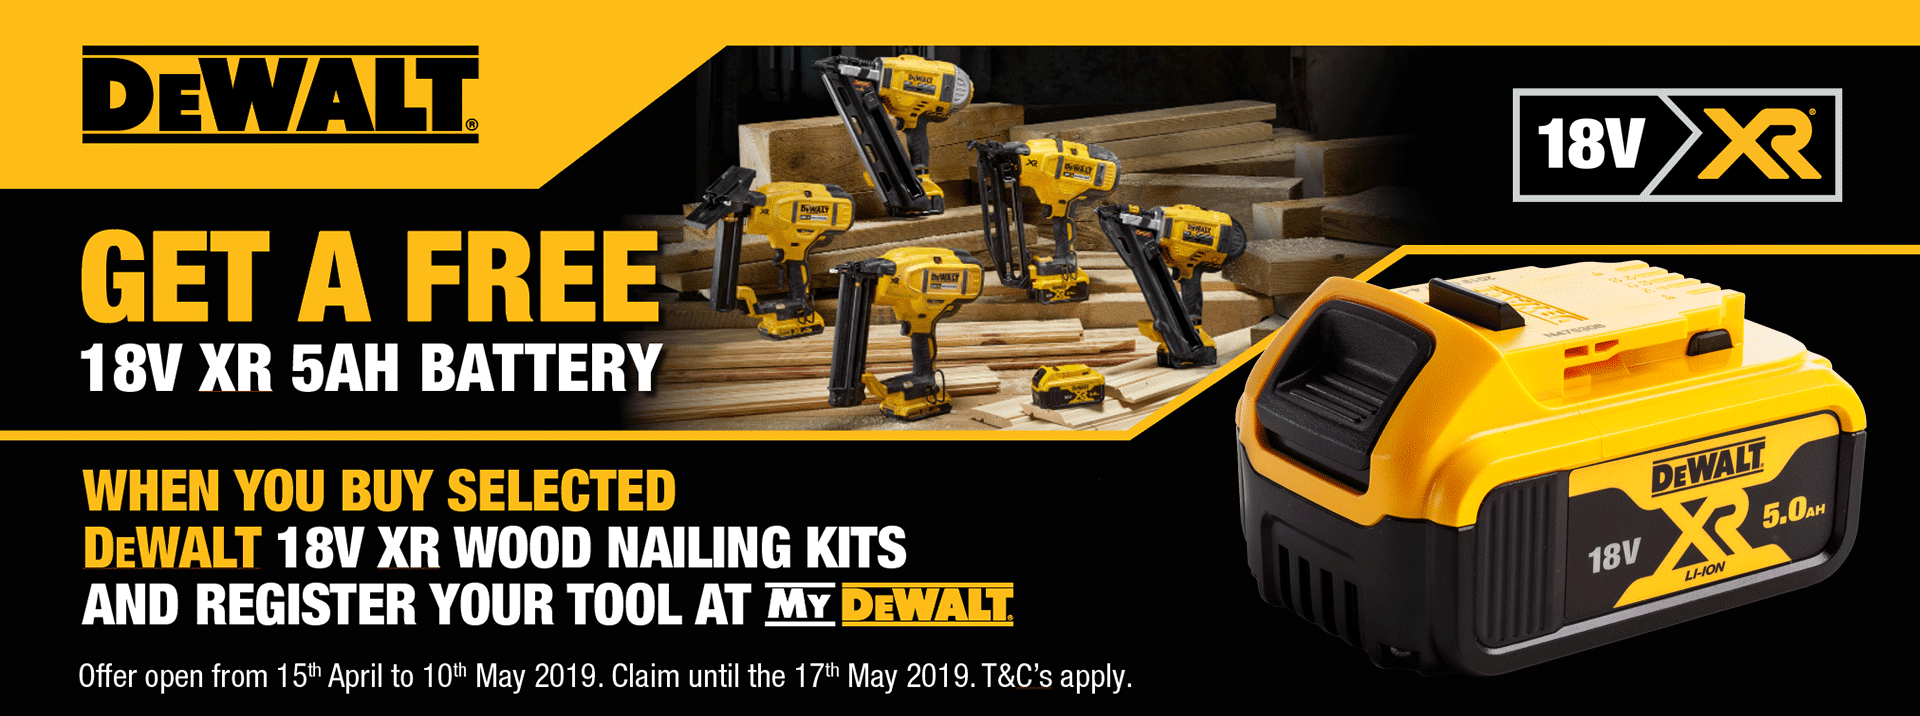 Dewalt Nailer Promotion